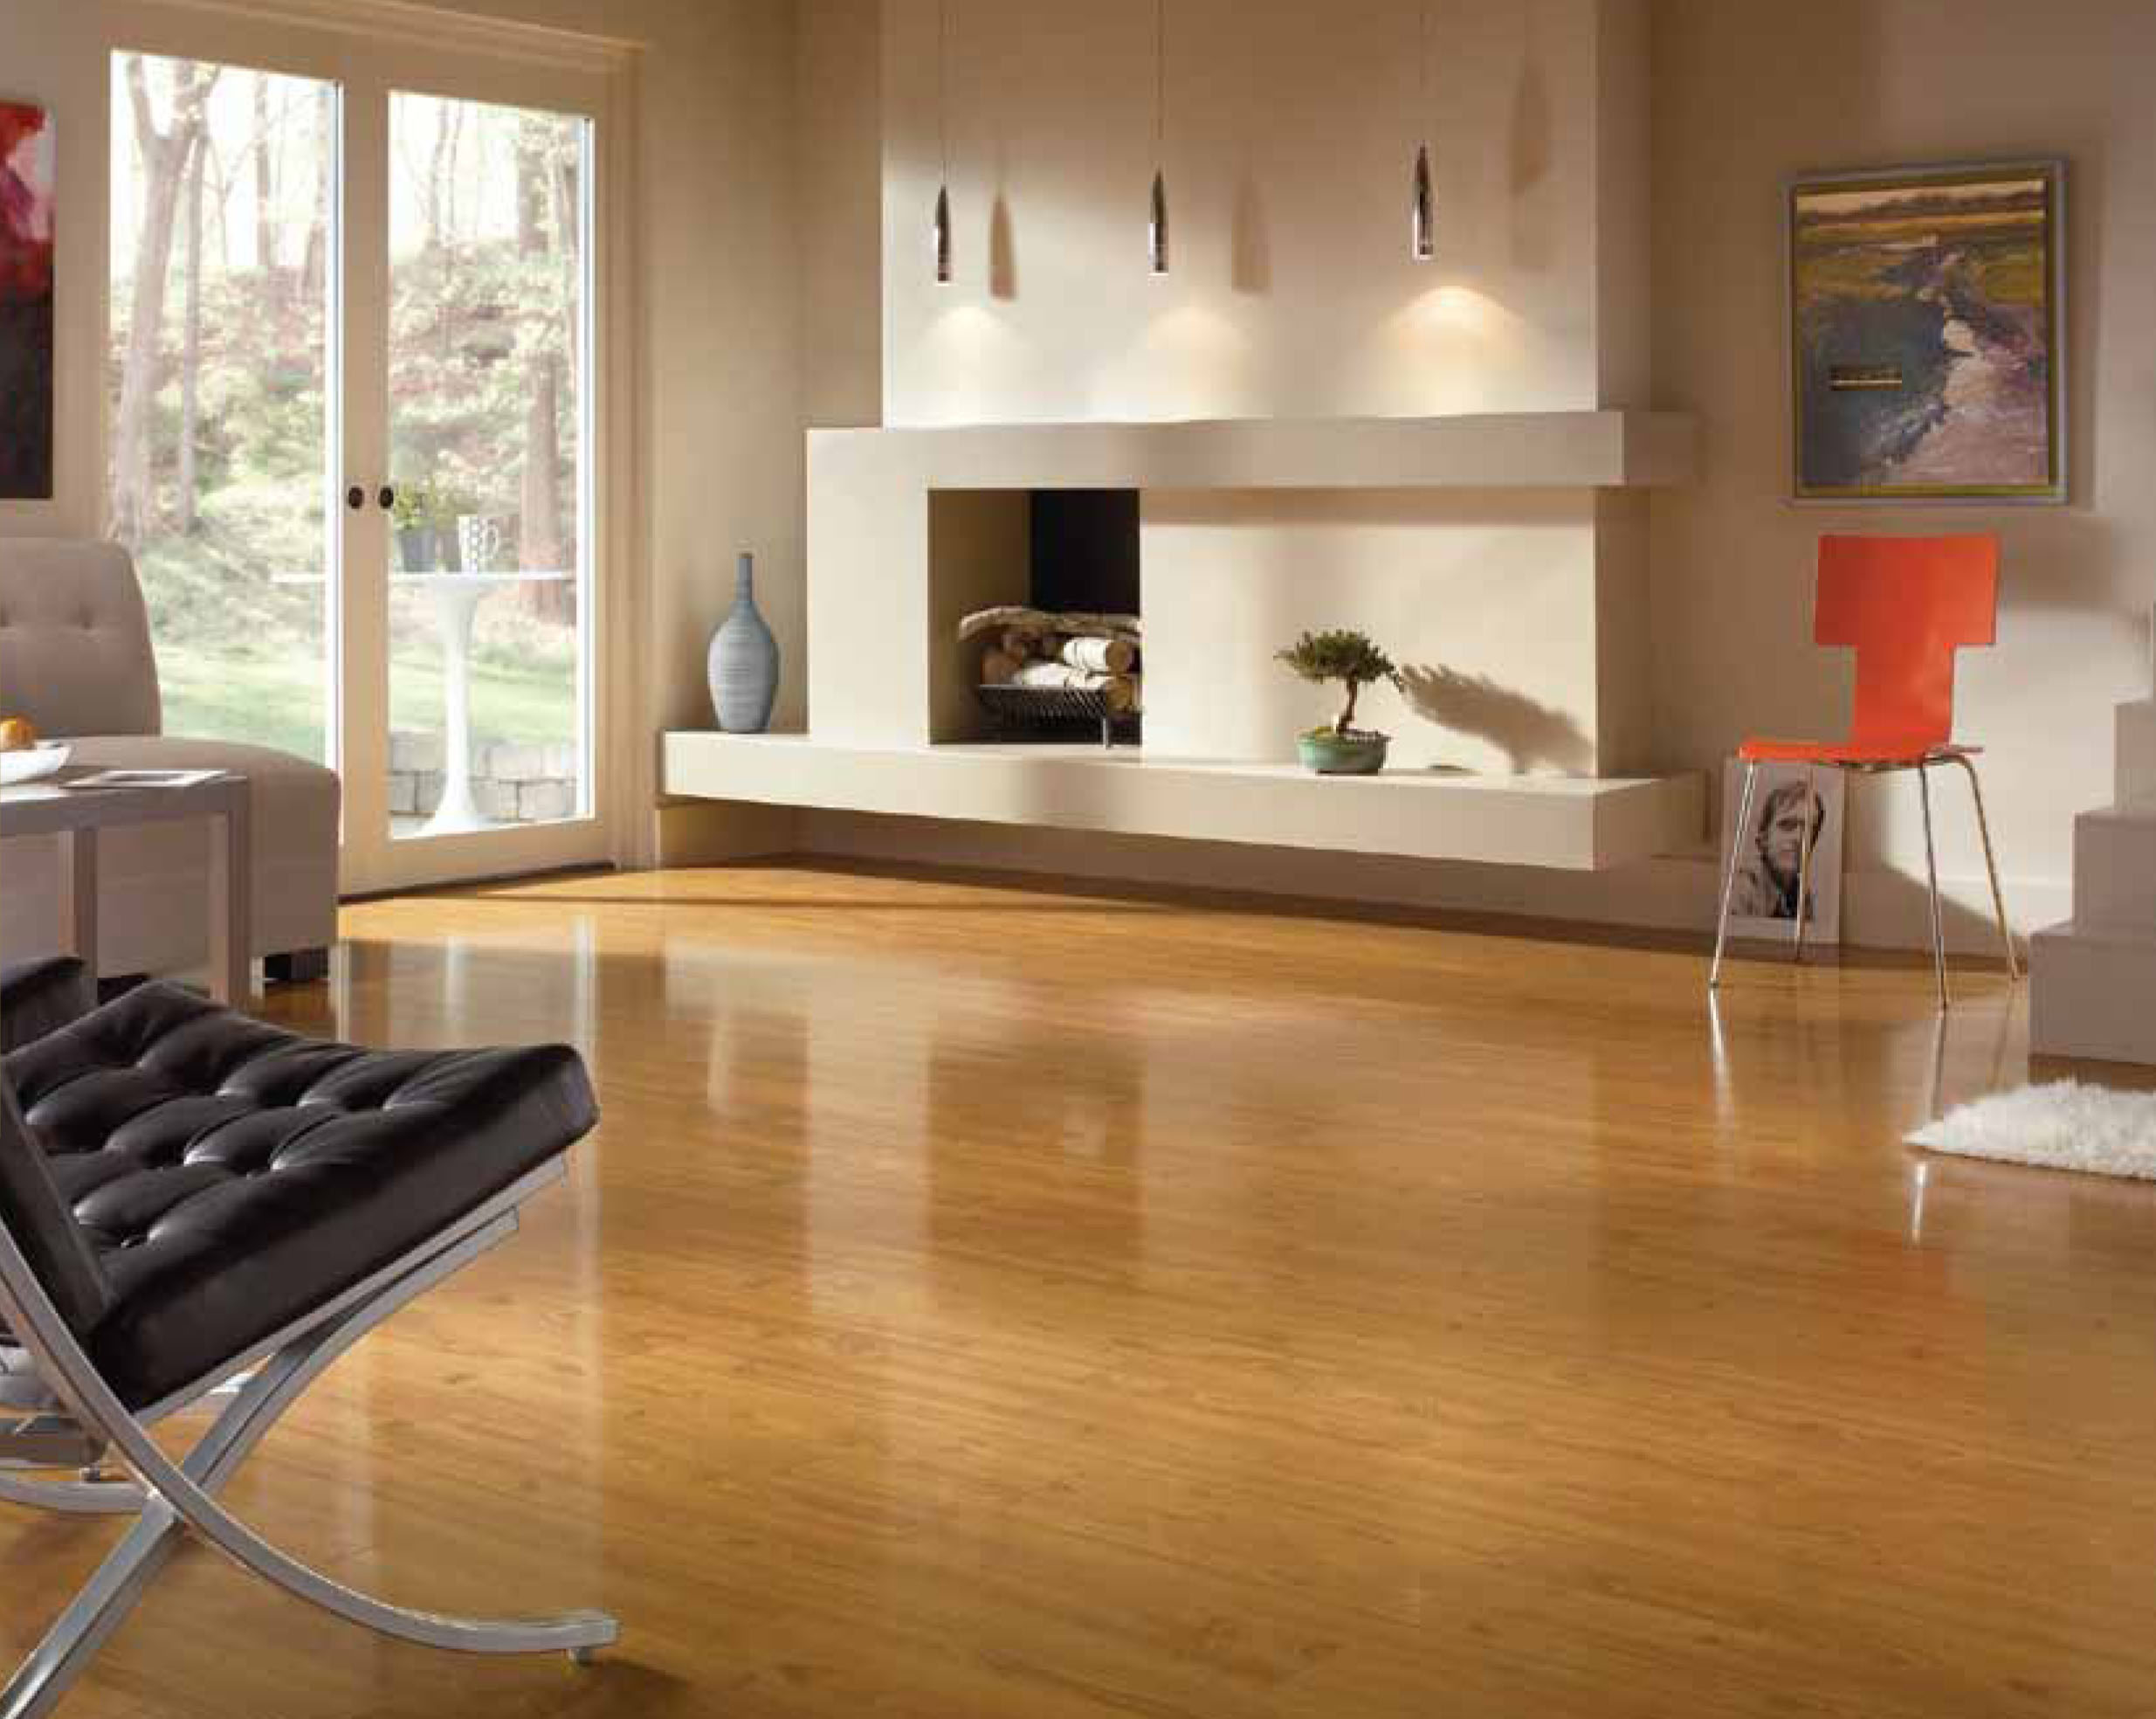 Living Room Floor Tiles Design In India Home Decor Ideal Flooring Solutions For Your Or Office